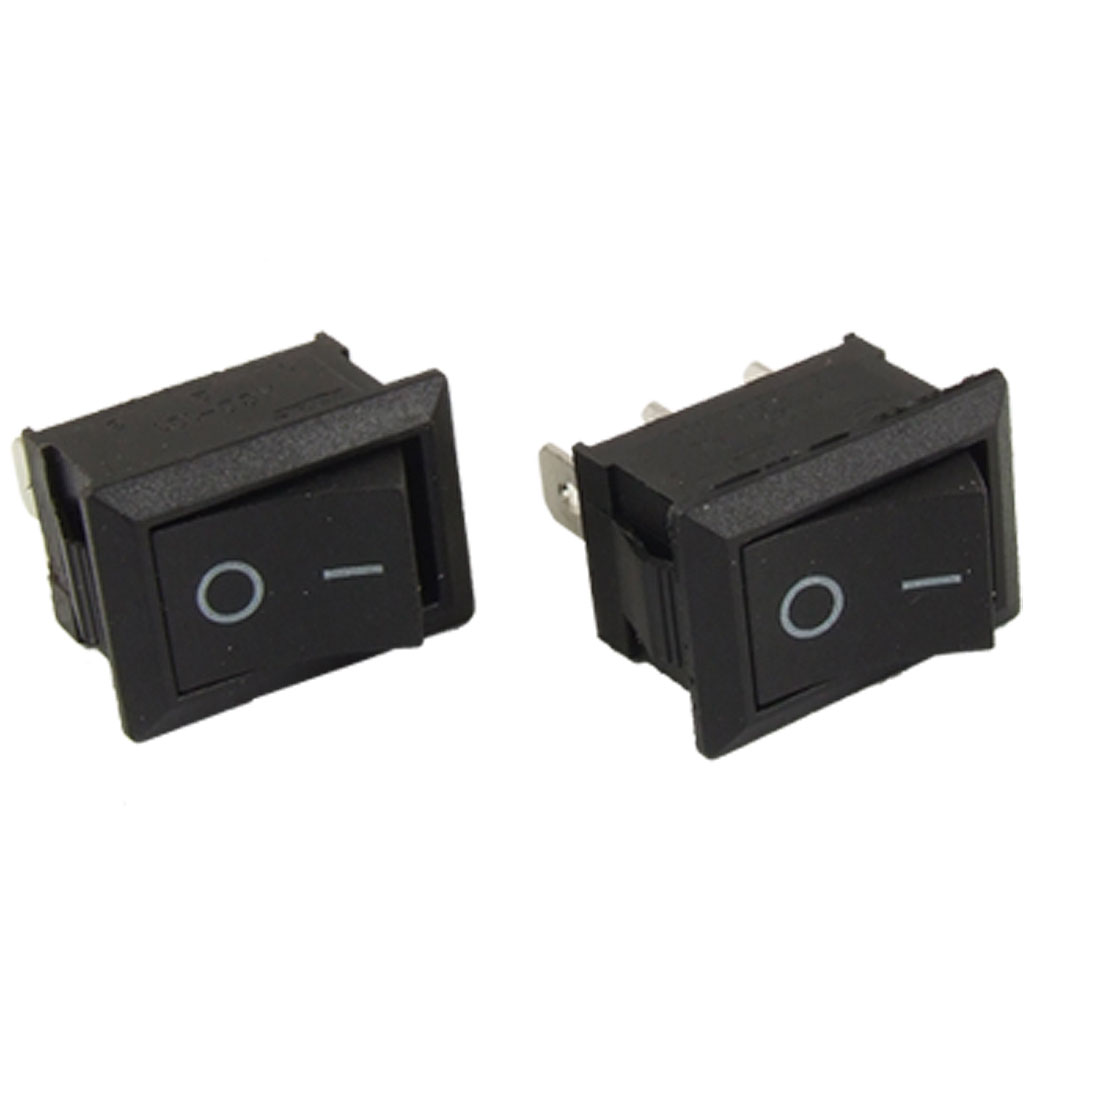 2pcs AC 6A/250V 10A/125V 3 Pin ON/ON 2 Position SPDT Snap-in Boat Rocker Switch